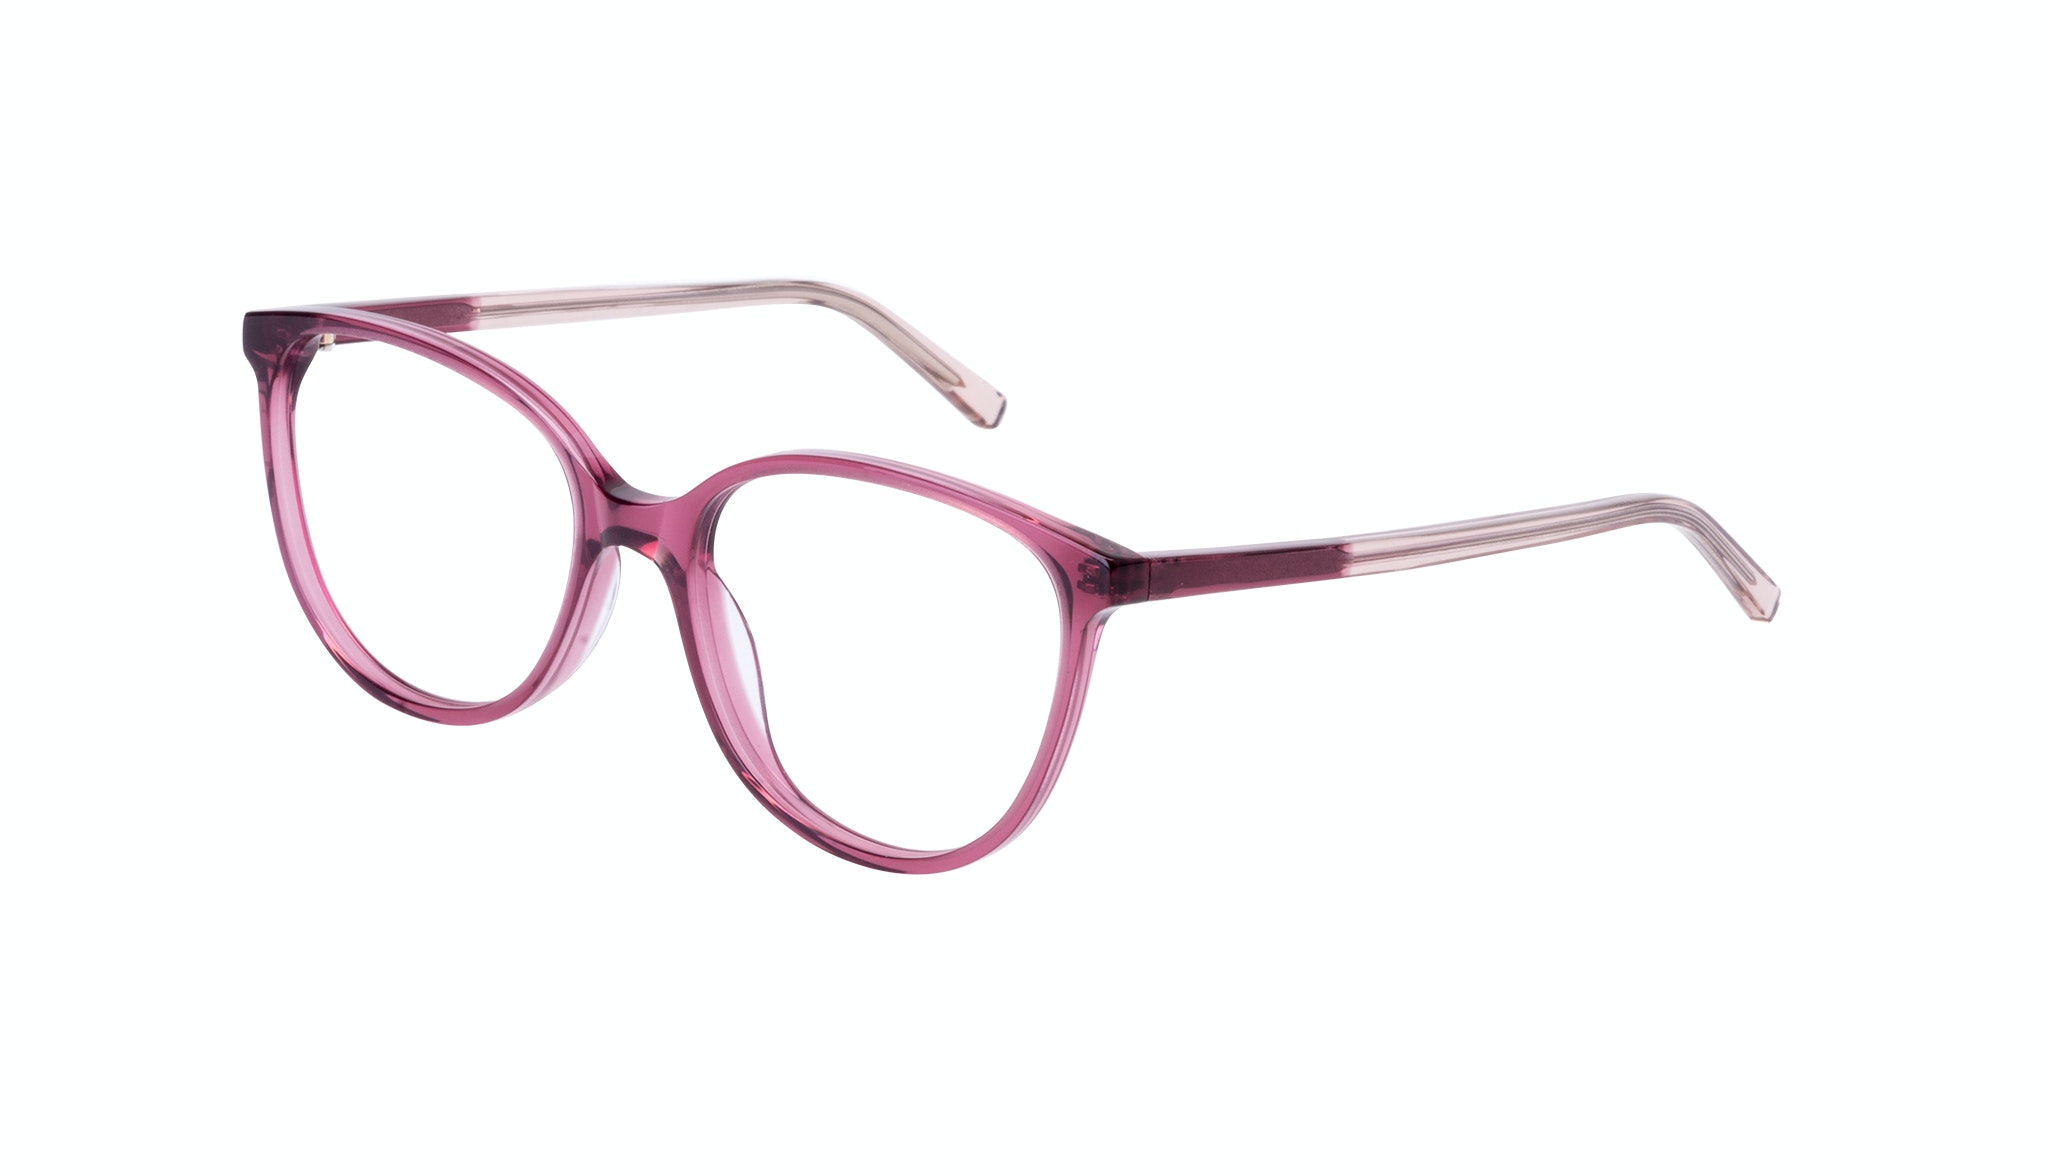 Affordable Fashion Glasses Round Eyeglasses Women Imagine Petite Berry Tilt